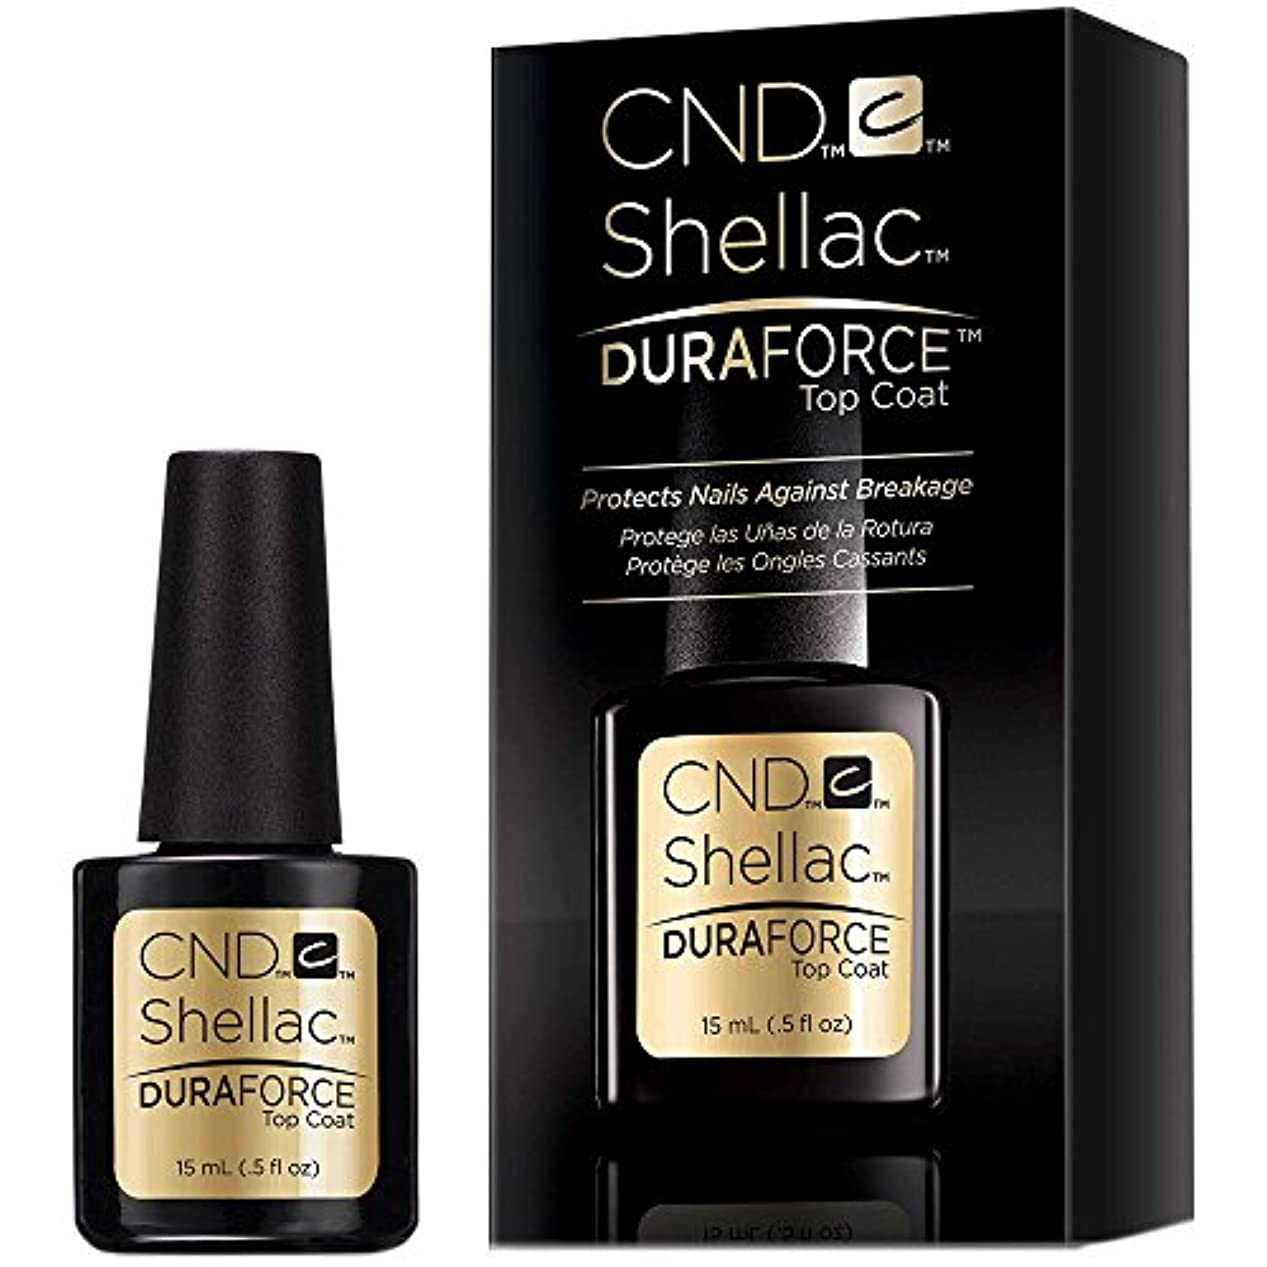 はさみ赤字赤面CND Shellac Gel Polish - Duraforce Top Coat - 0.5oz / 15ml